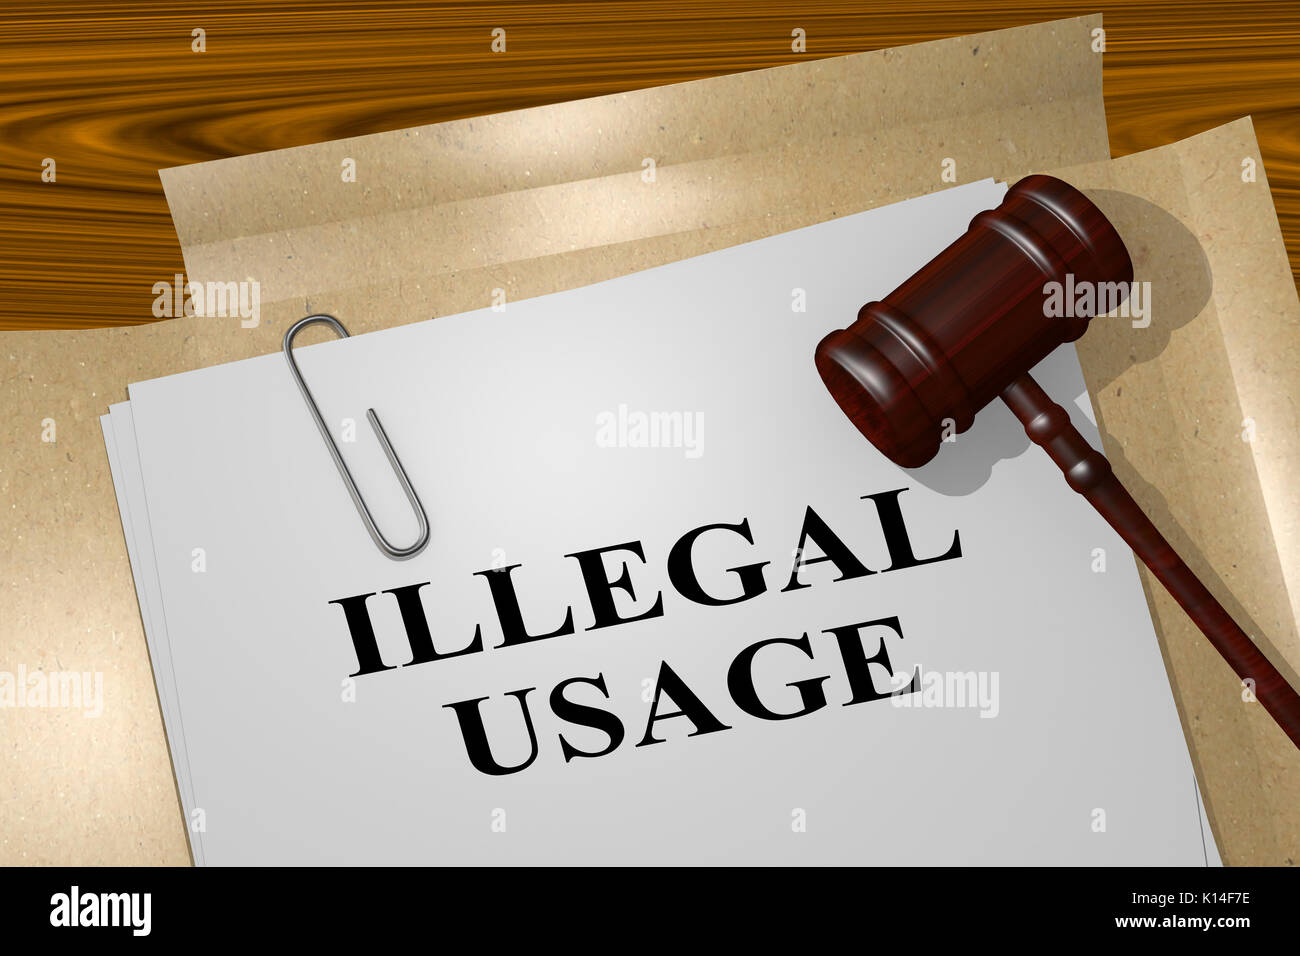 3D illustration of 'ILLEGAL USAGE' title on legal document - Stock Image